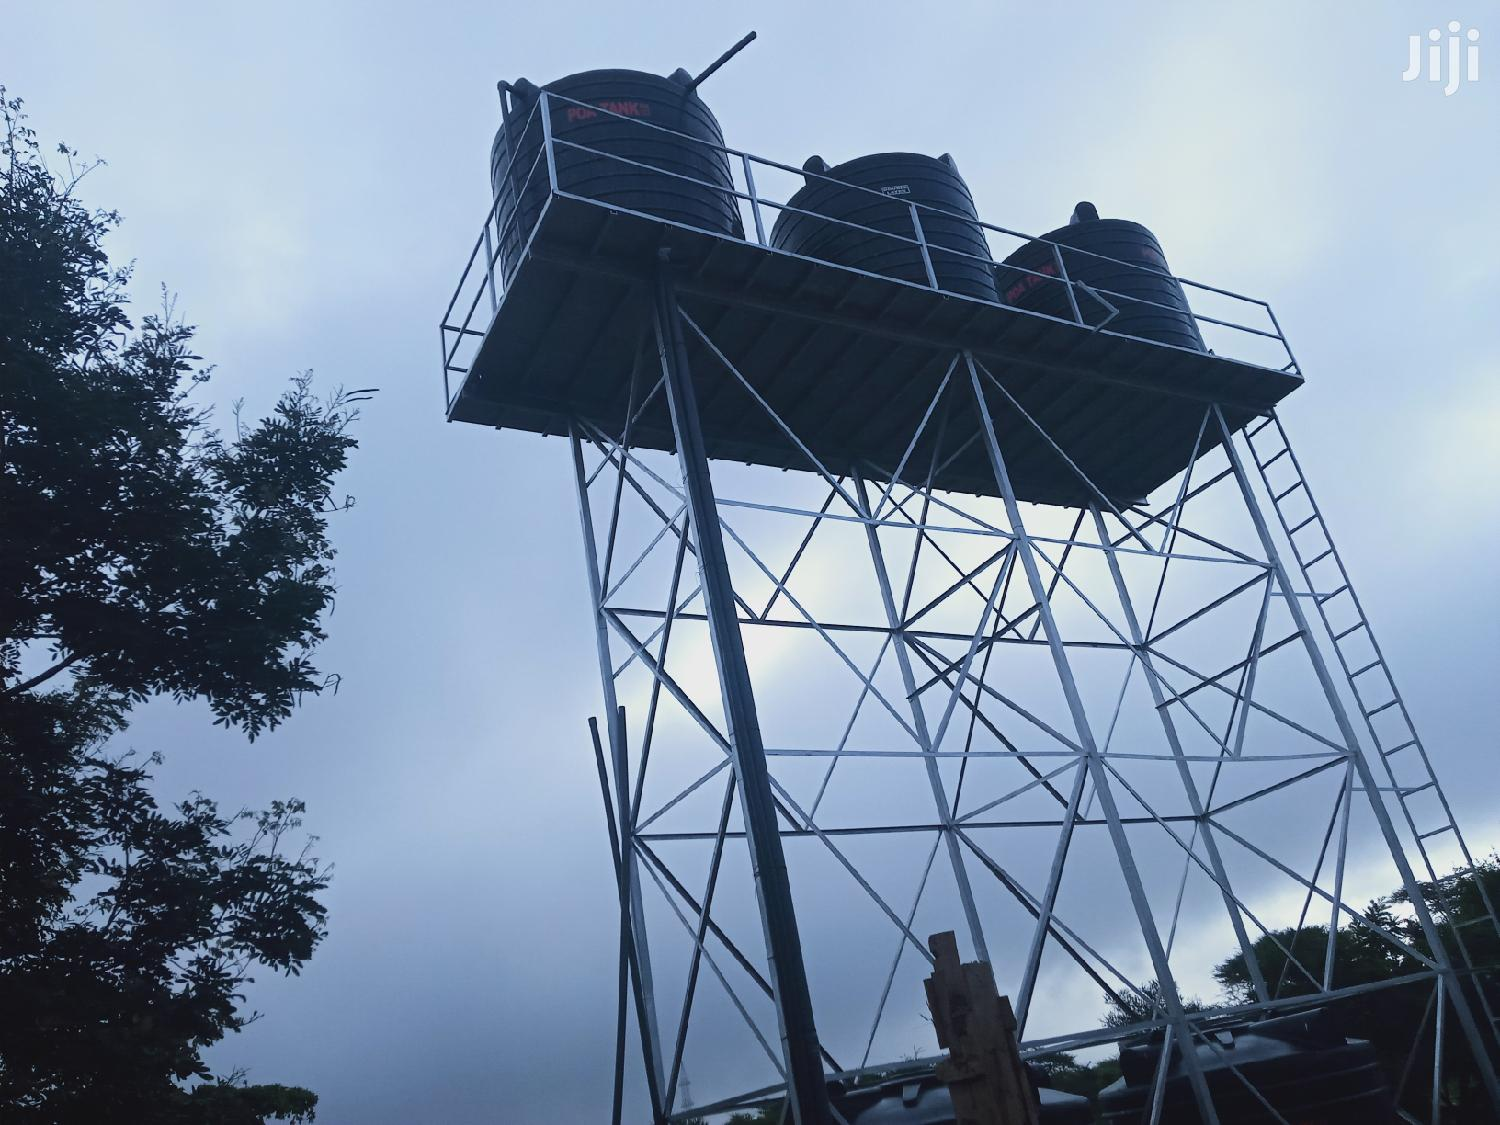 Tank Platform, Raised Tank Stand Elevated Water Tower | Other Repair & Construction Items for sale in Nguni, Kitui, Kenya